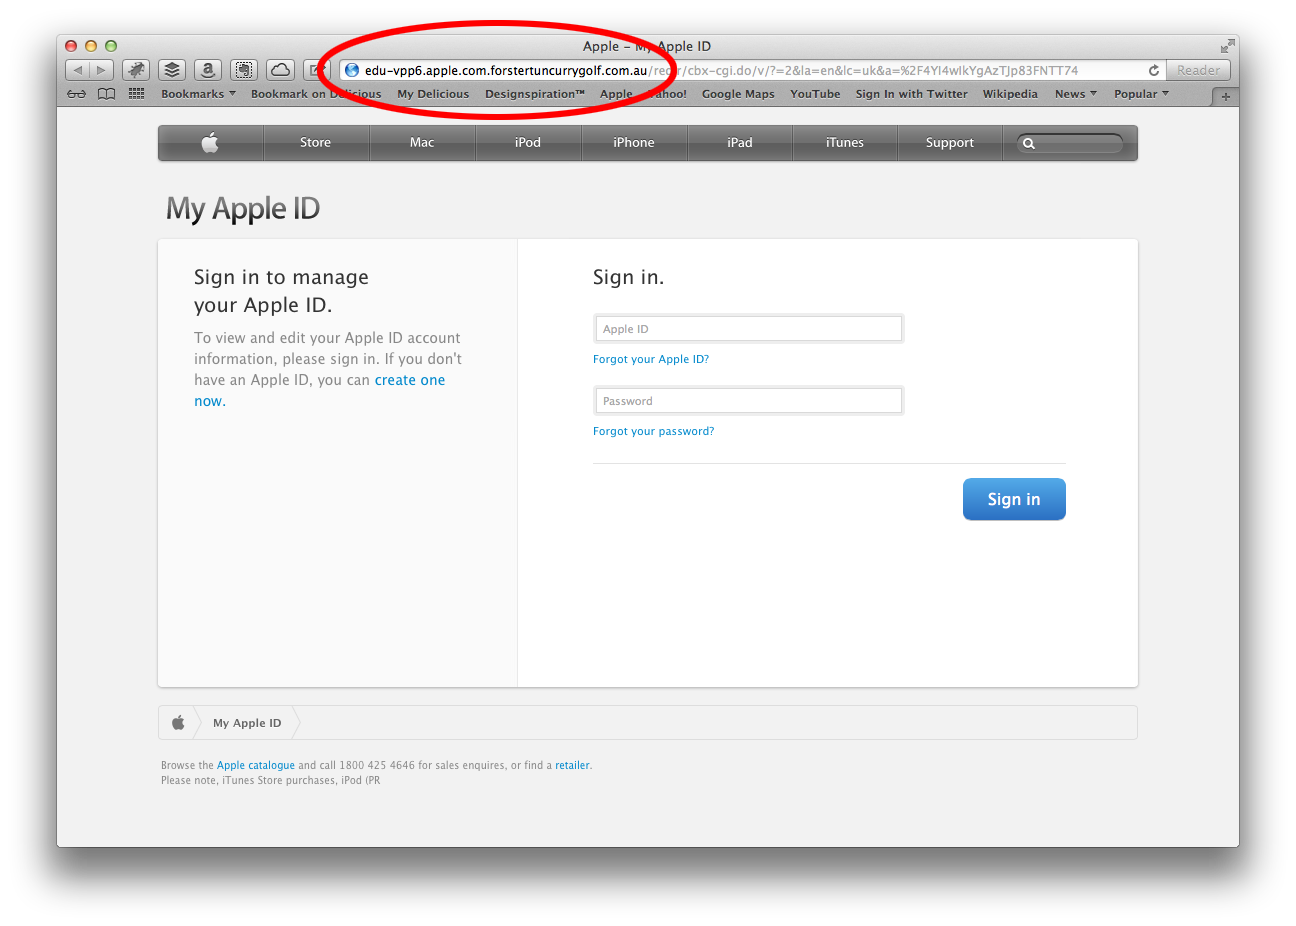 apple-phish-website-0213-02-copy